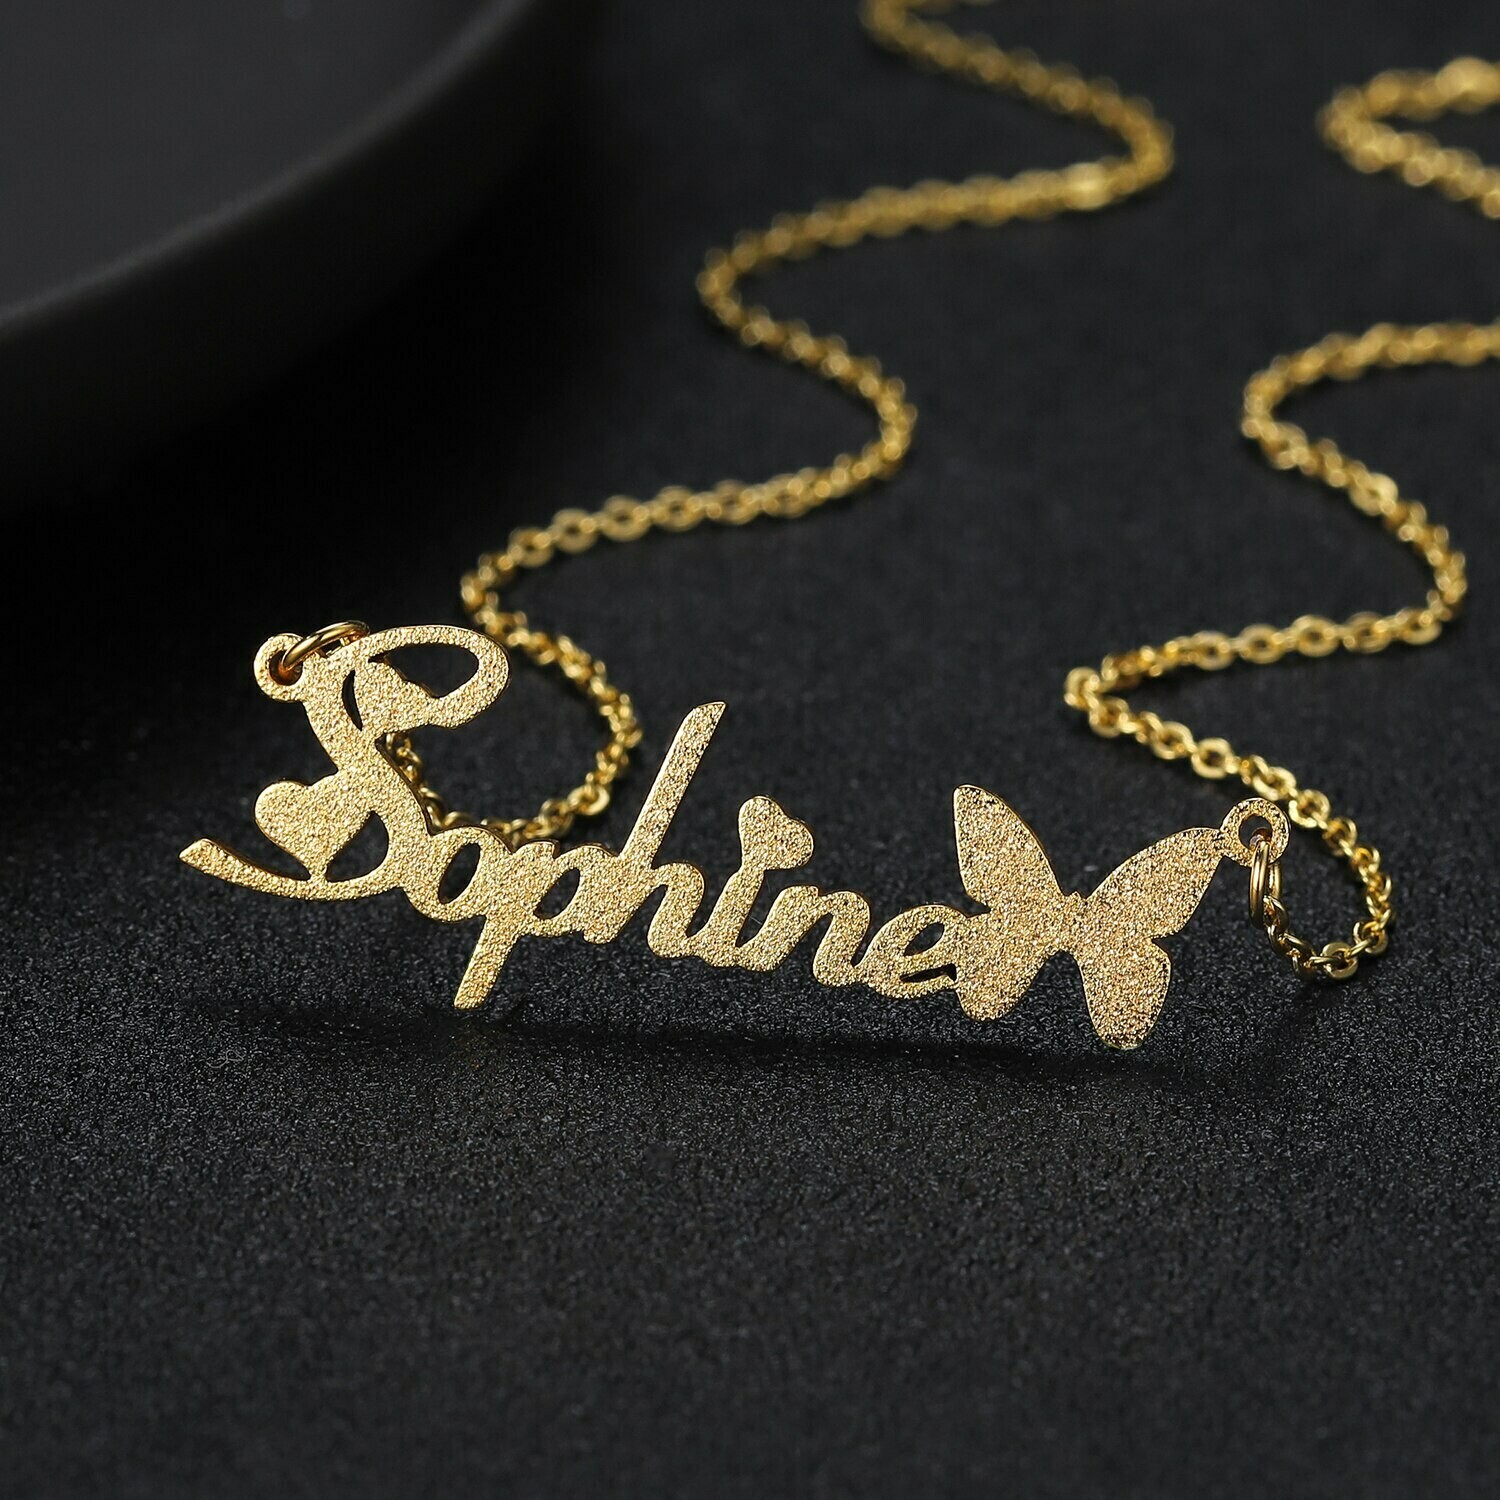 Personalized Frosted Name Butterfly Design Necklace